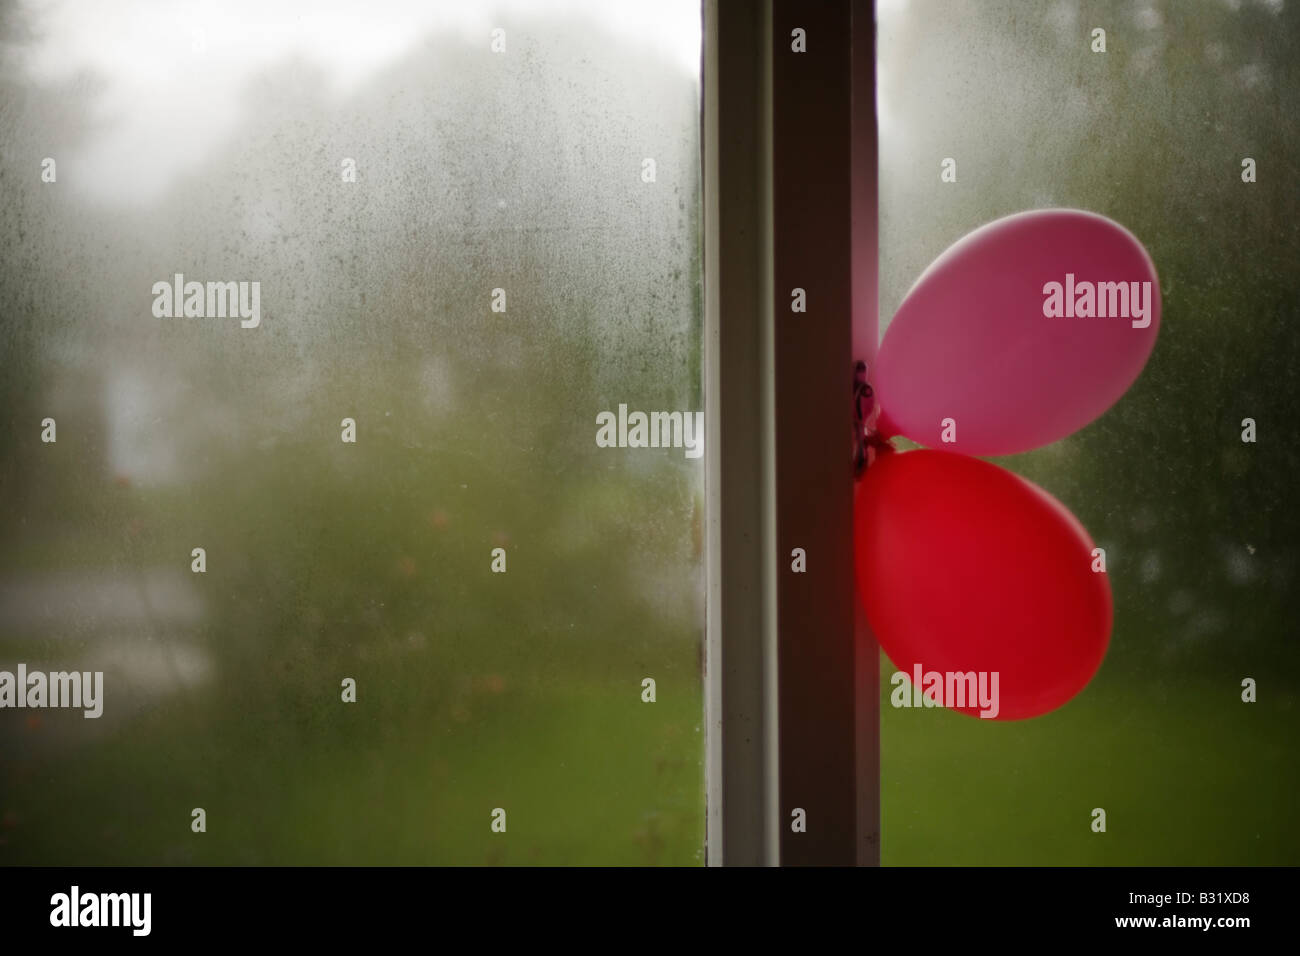 Balloons at the window - Stock Image